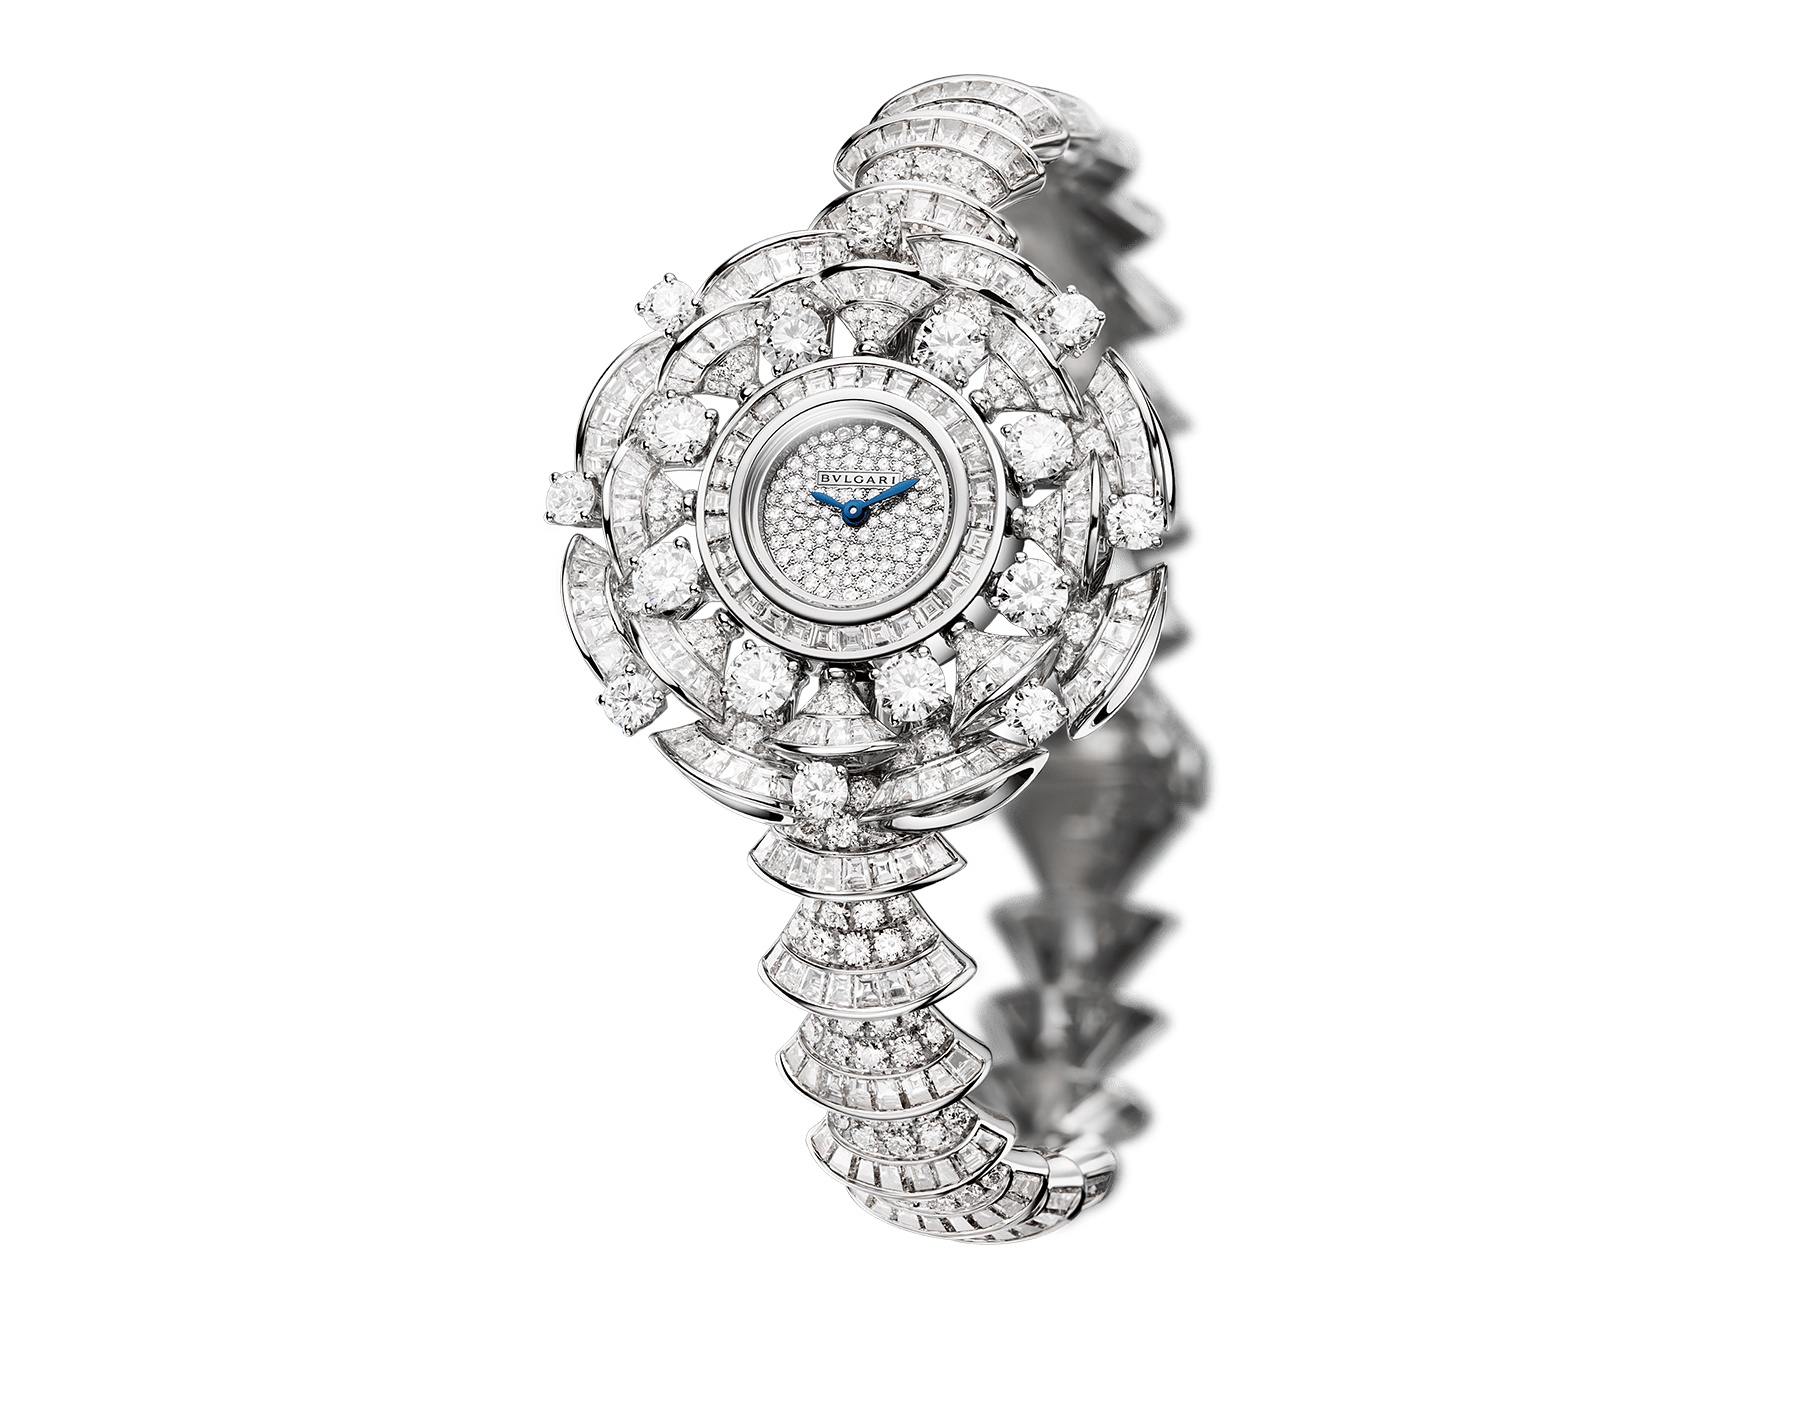 DIVAS' DREAM watch with 18 white gold case set with baguette, round and brilliant-cut diamonds, snow pavé dial and 18 kt white gold bracelet set with brilliant-cut diamonds 102078 image 1